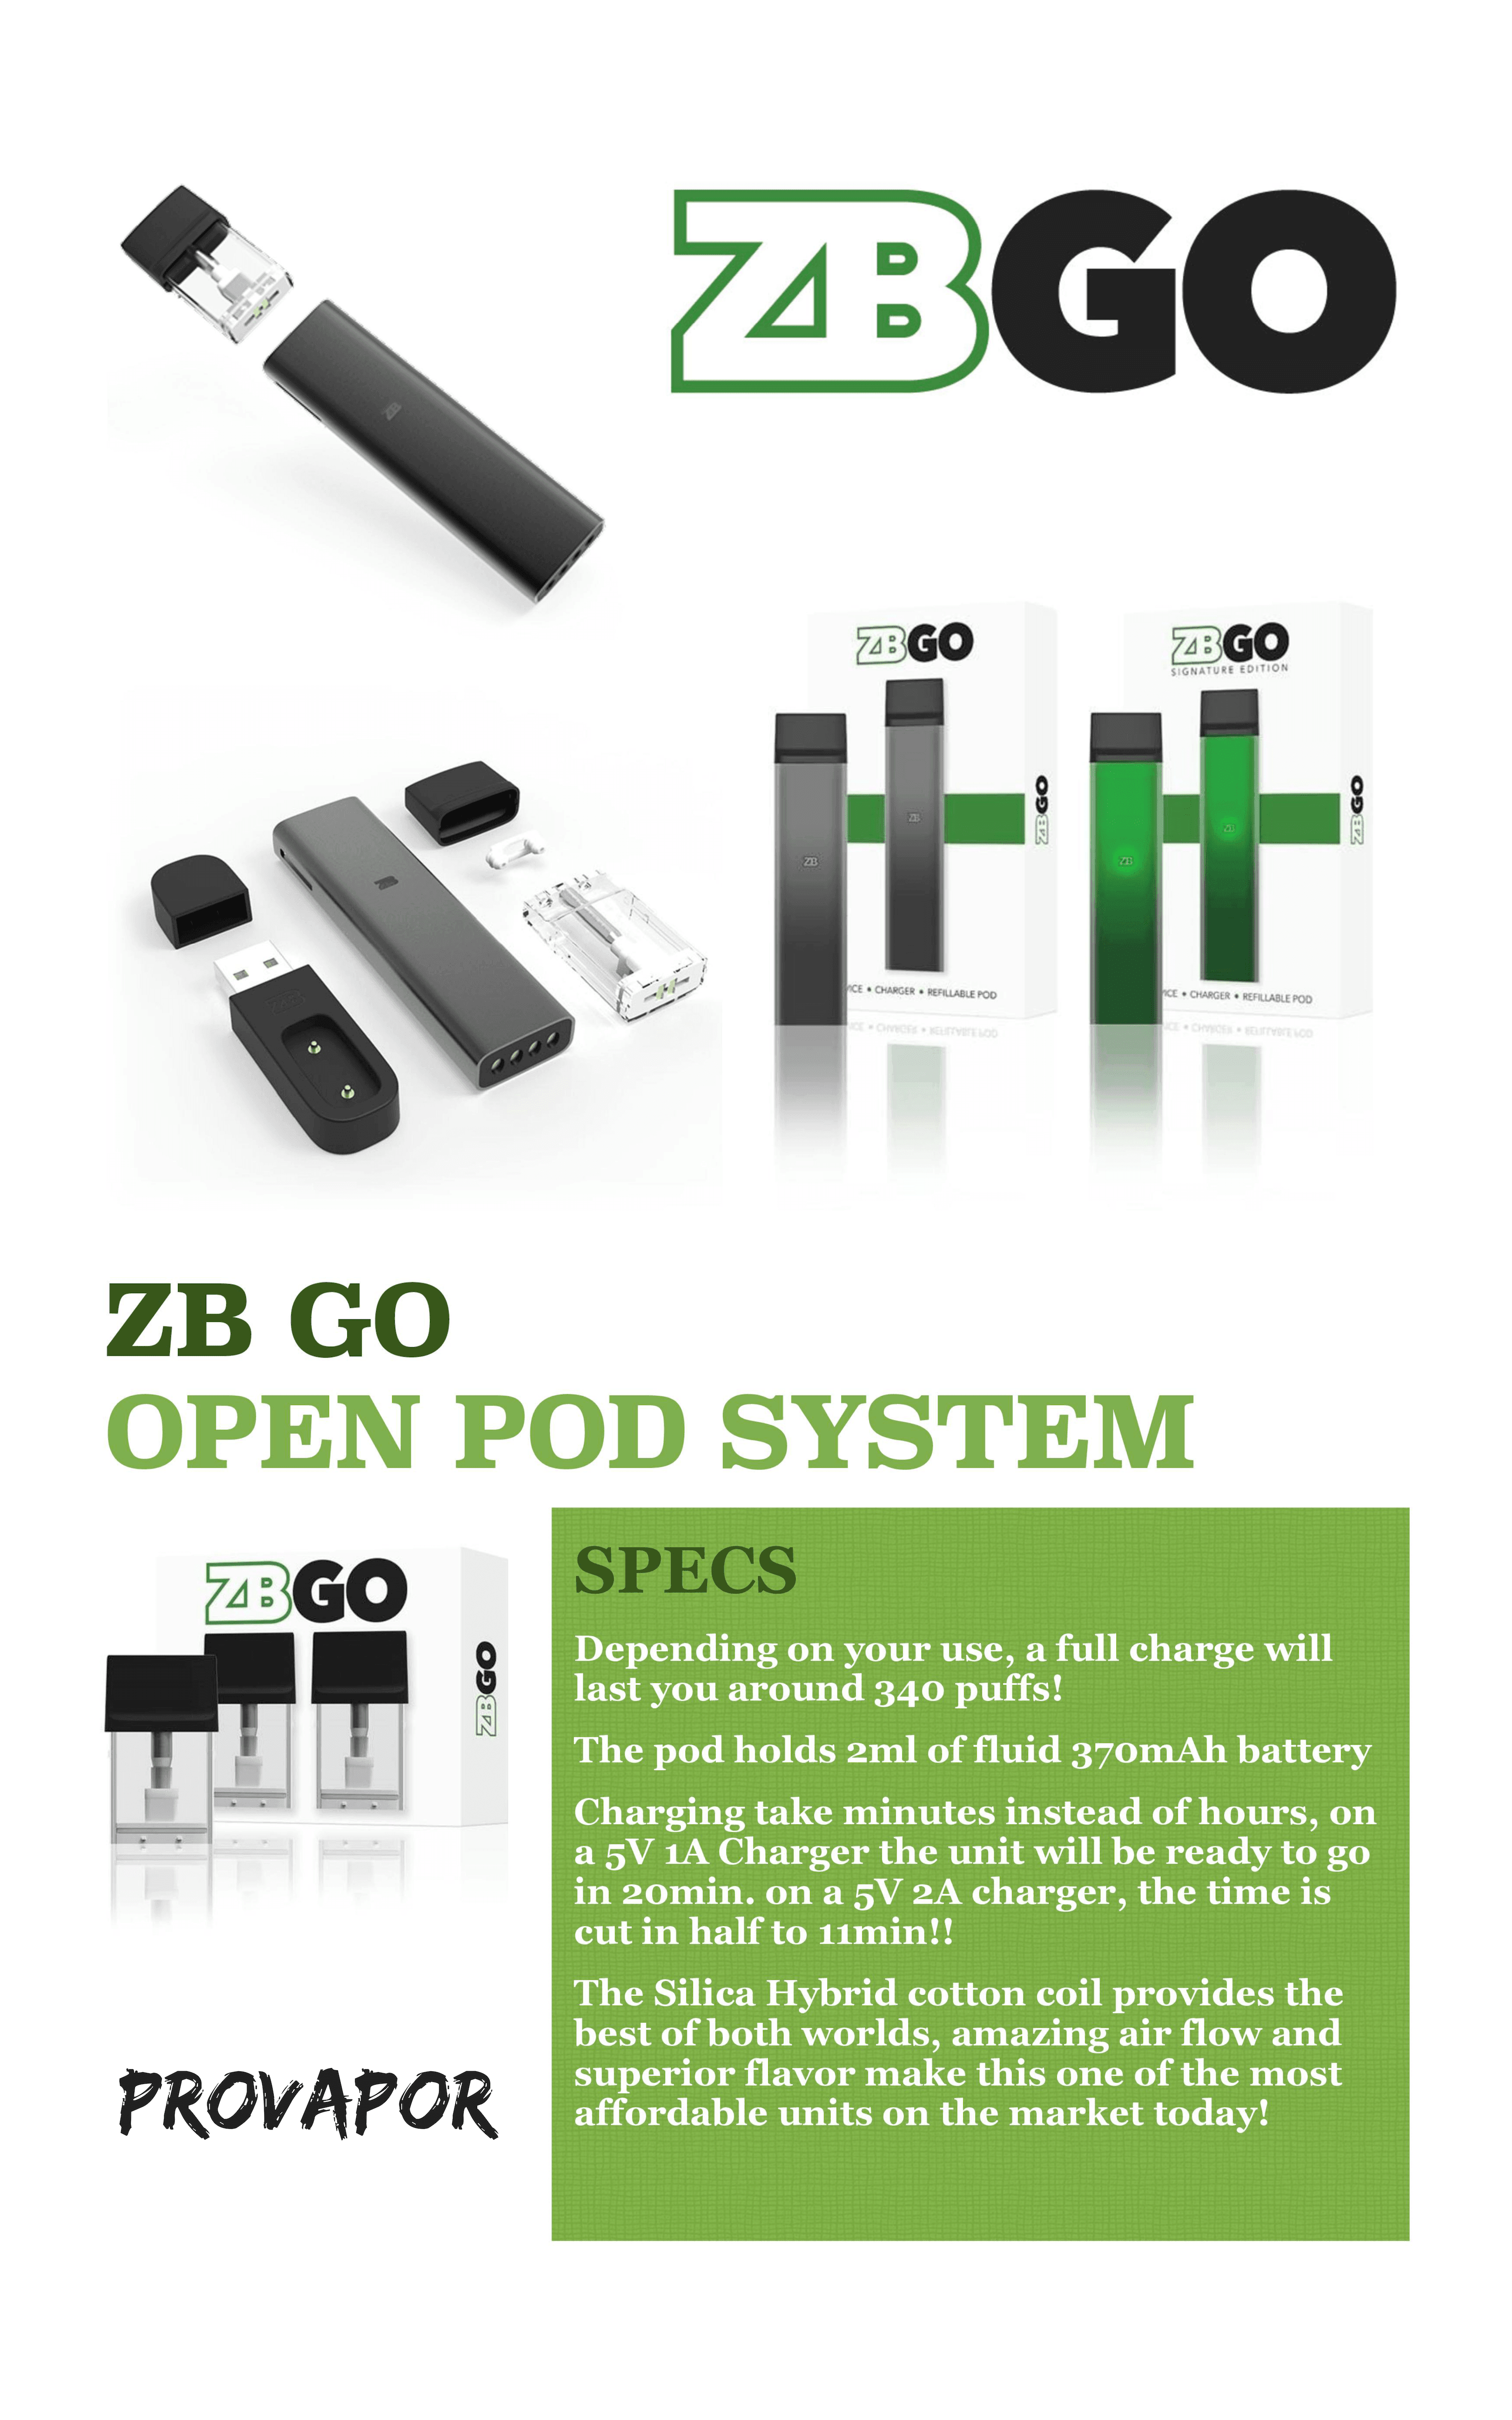 this image shows the specs on a green box with the zbgo device and boxes above in black and green color variations all against a white backgrounds.